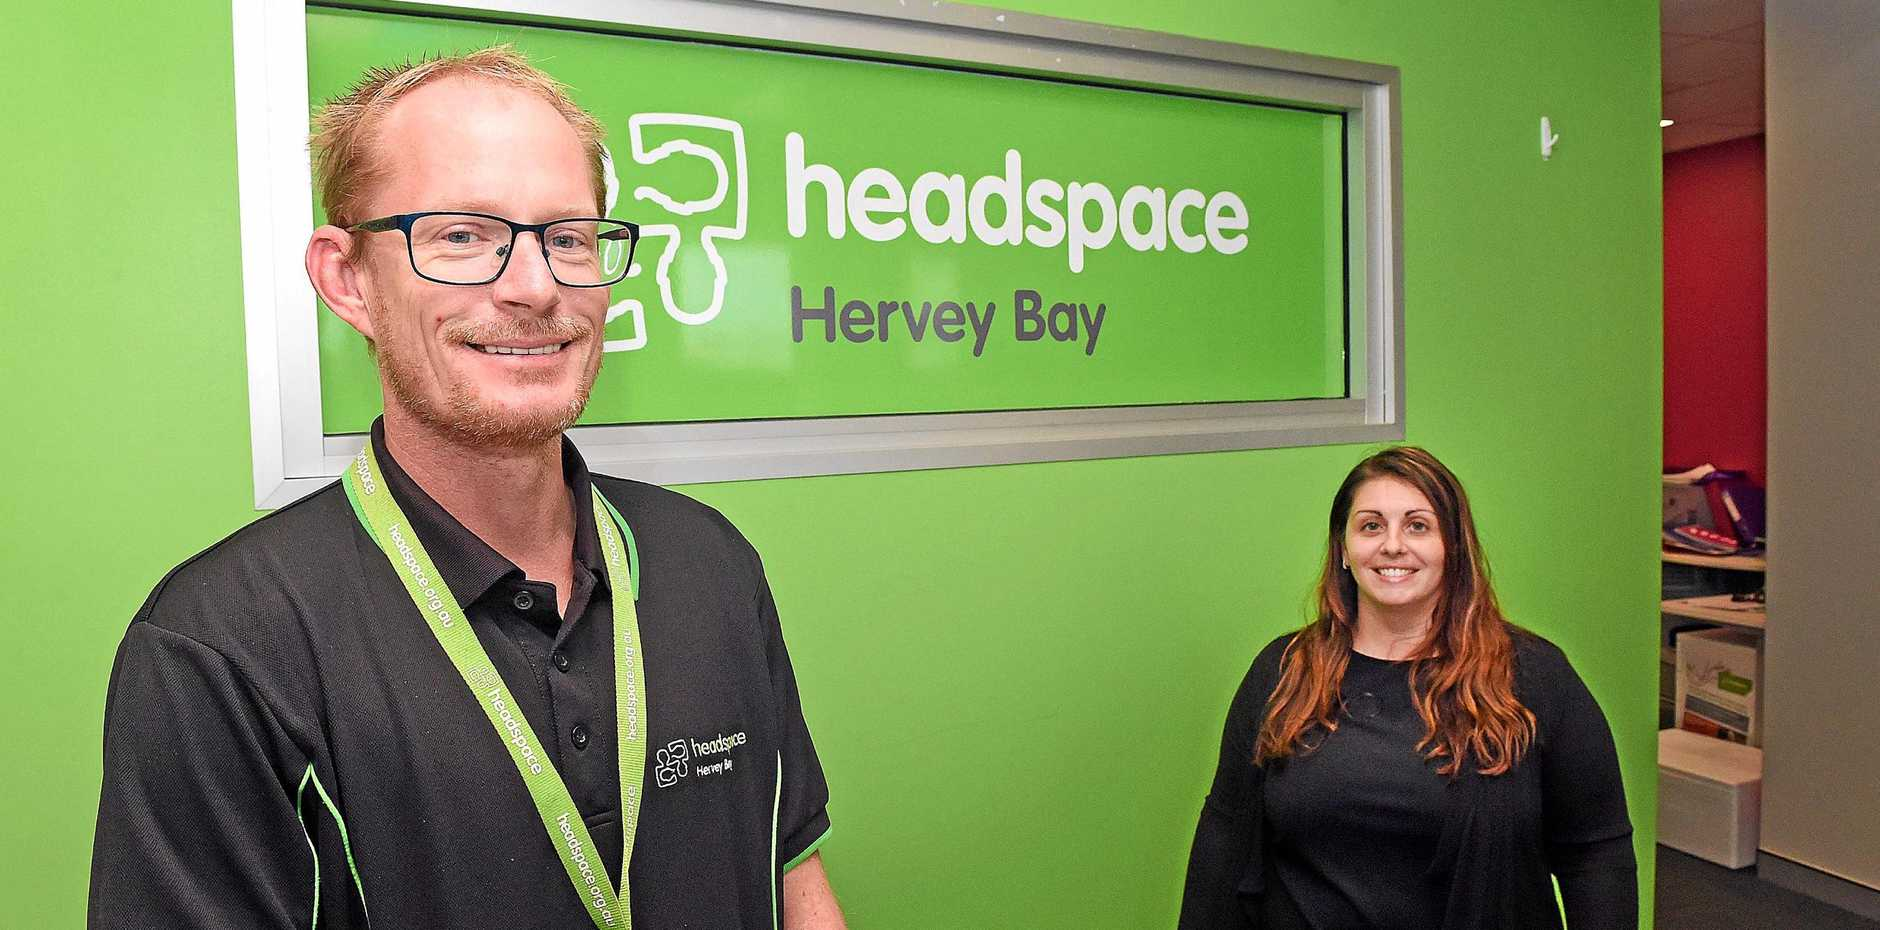 SATELLITE OFFICE OPENING: Ricky Goostrey and Melissa Carson from Headspace Hervey Bay. A satellite office will open in Maryborough to provide services for young people.